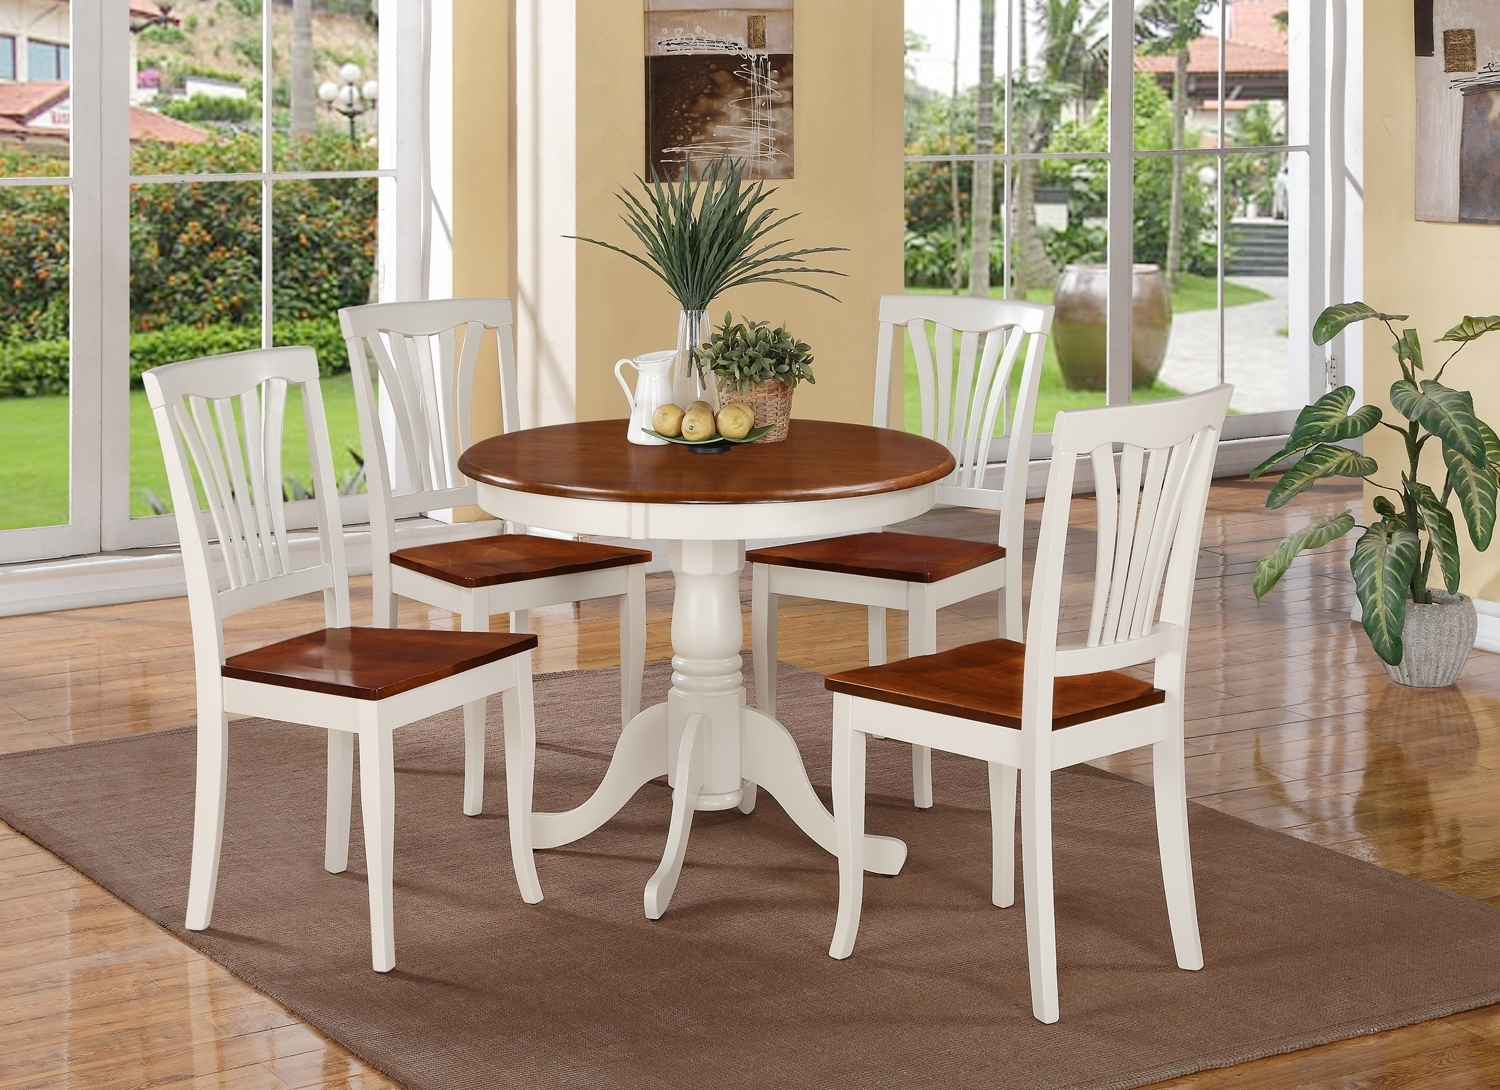 Best And Newest Dining Tables. Interesting Small Circular Dining Table And Chairs Pertaining To White Circular Dining Tables (Gallery 22 of 25)